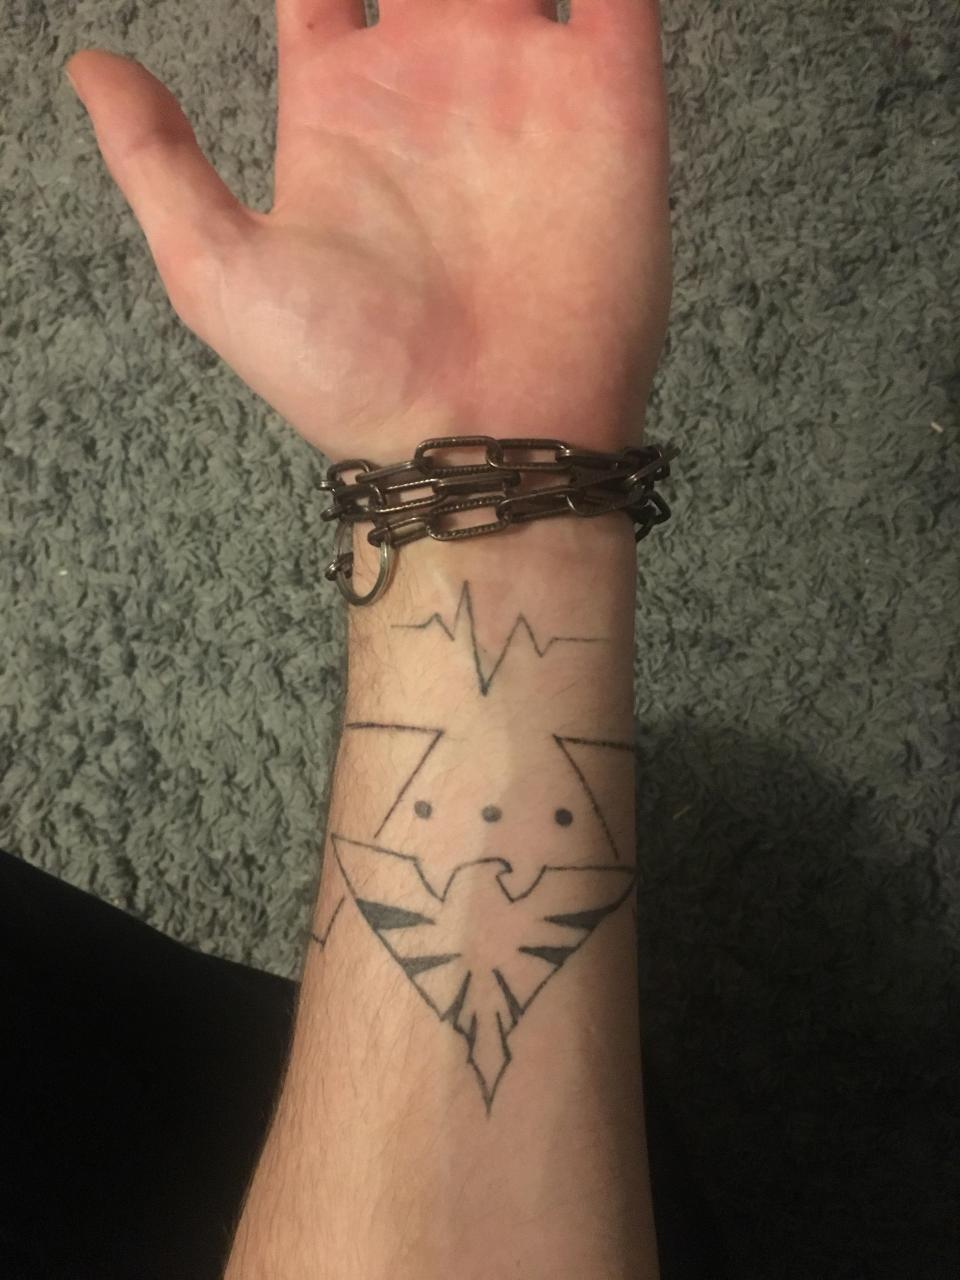 Tattoos on my left arm. Did them myself. What do you think?